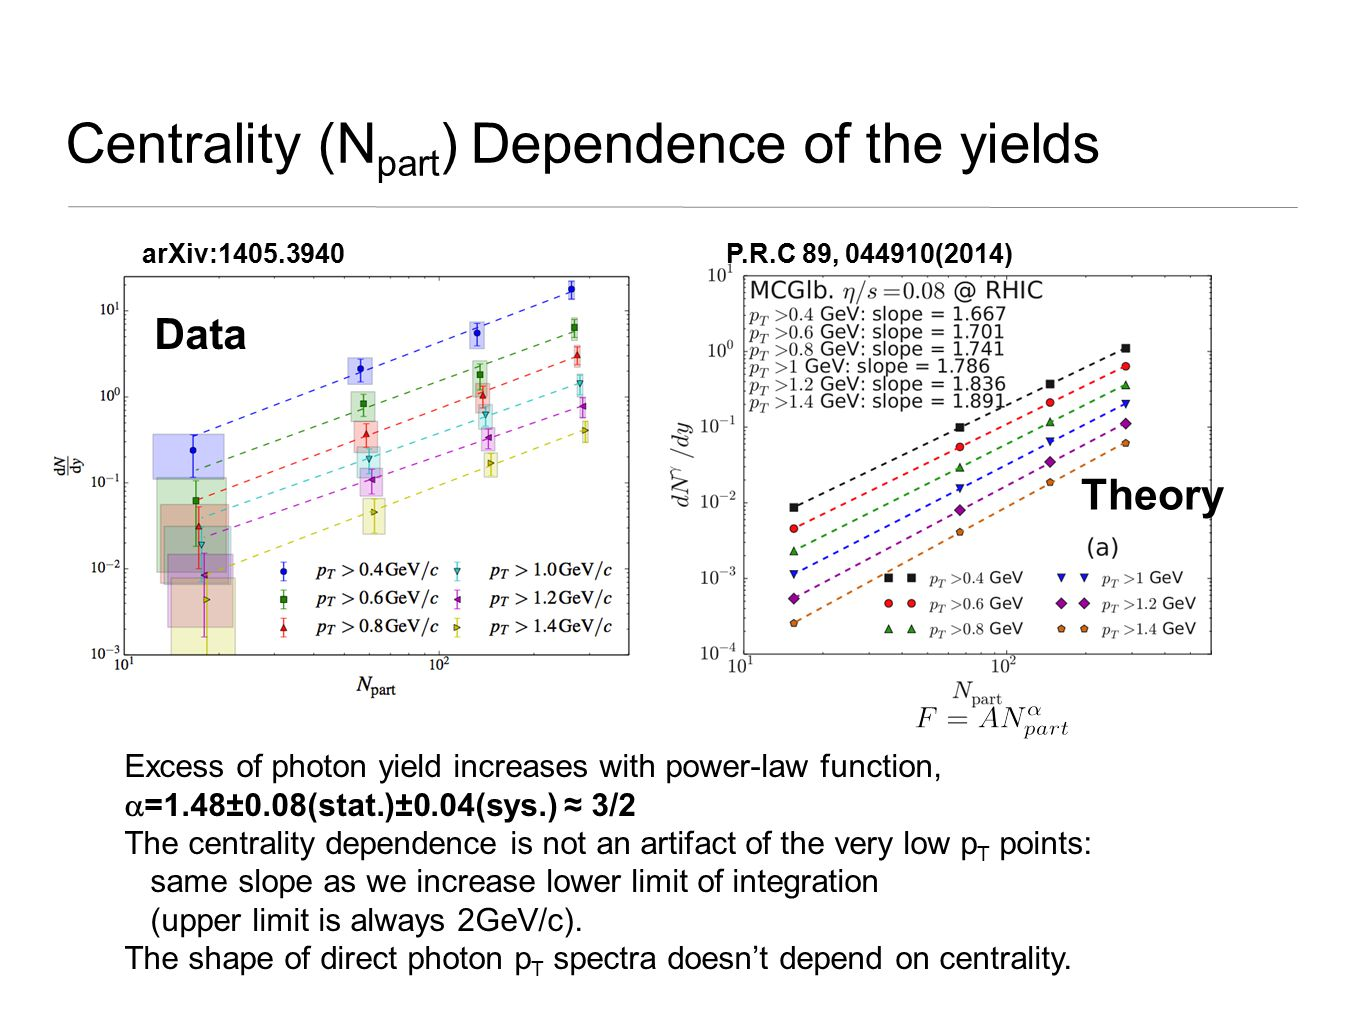 Centrality (N part ) Dependence of the yields Excess of photon yield increases with power-law function,  =1.48±0.08(stat.)±0.04(sys.) ≈ 3/2 The centrality dependence is not an artifact of the very low p T points: same slope as we increase lower limit of integration (upper limit is always 2GeV/c).